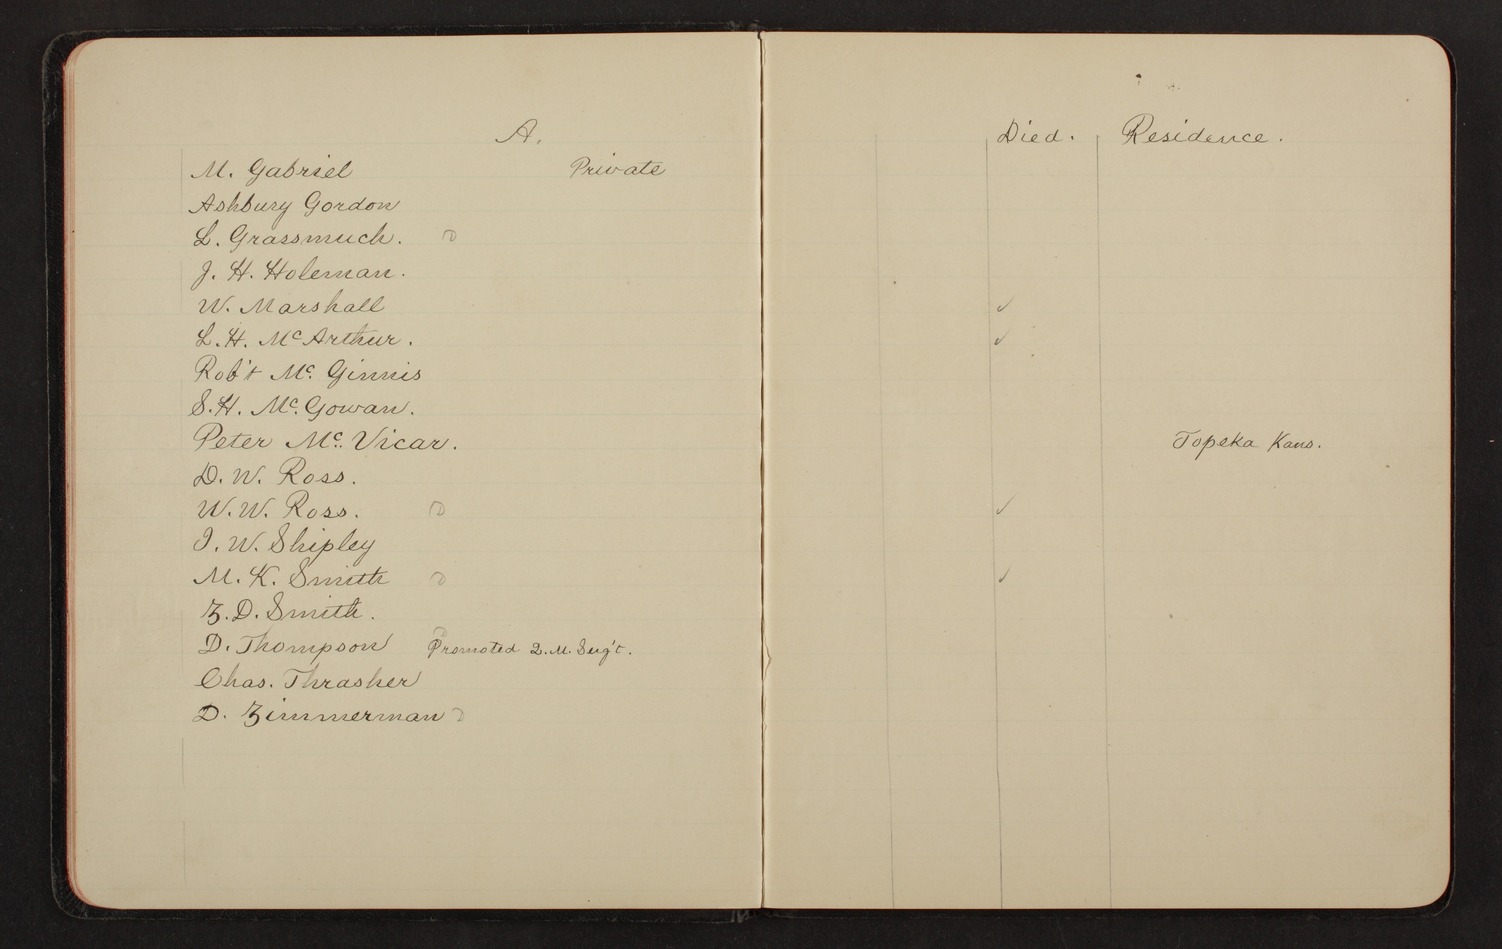 Society of the Anniversary of the Battle of the Blue minutes and roster of the 2nd Regiment, Kansas militia - 5